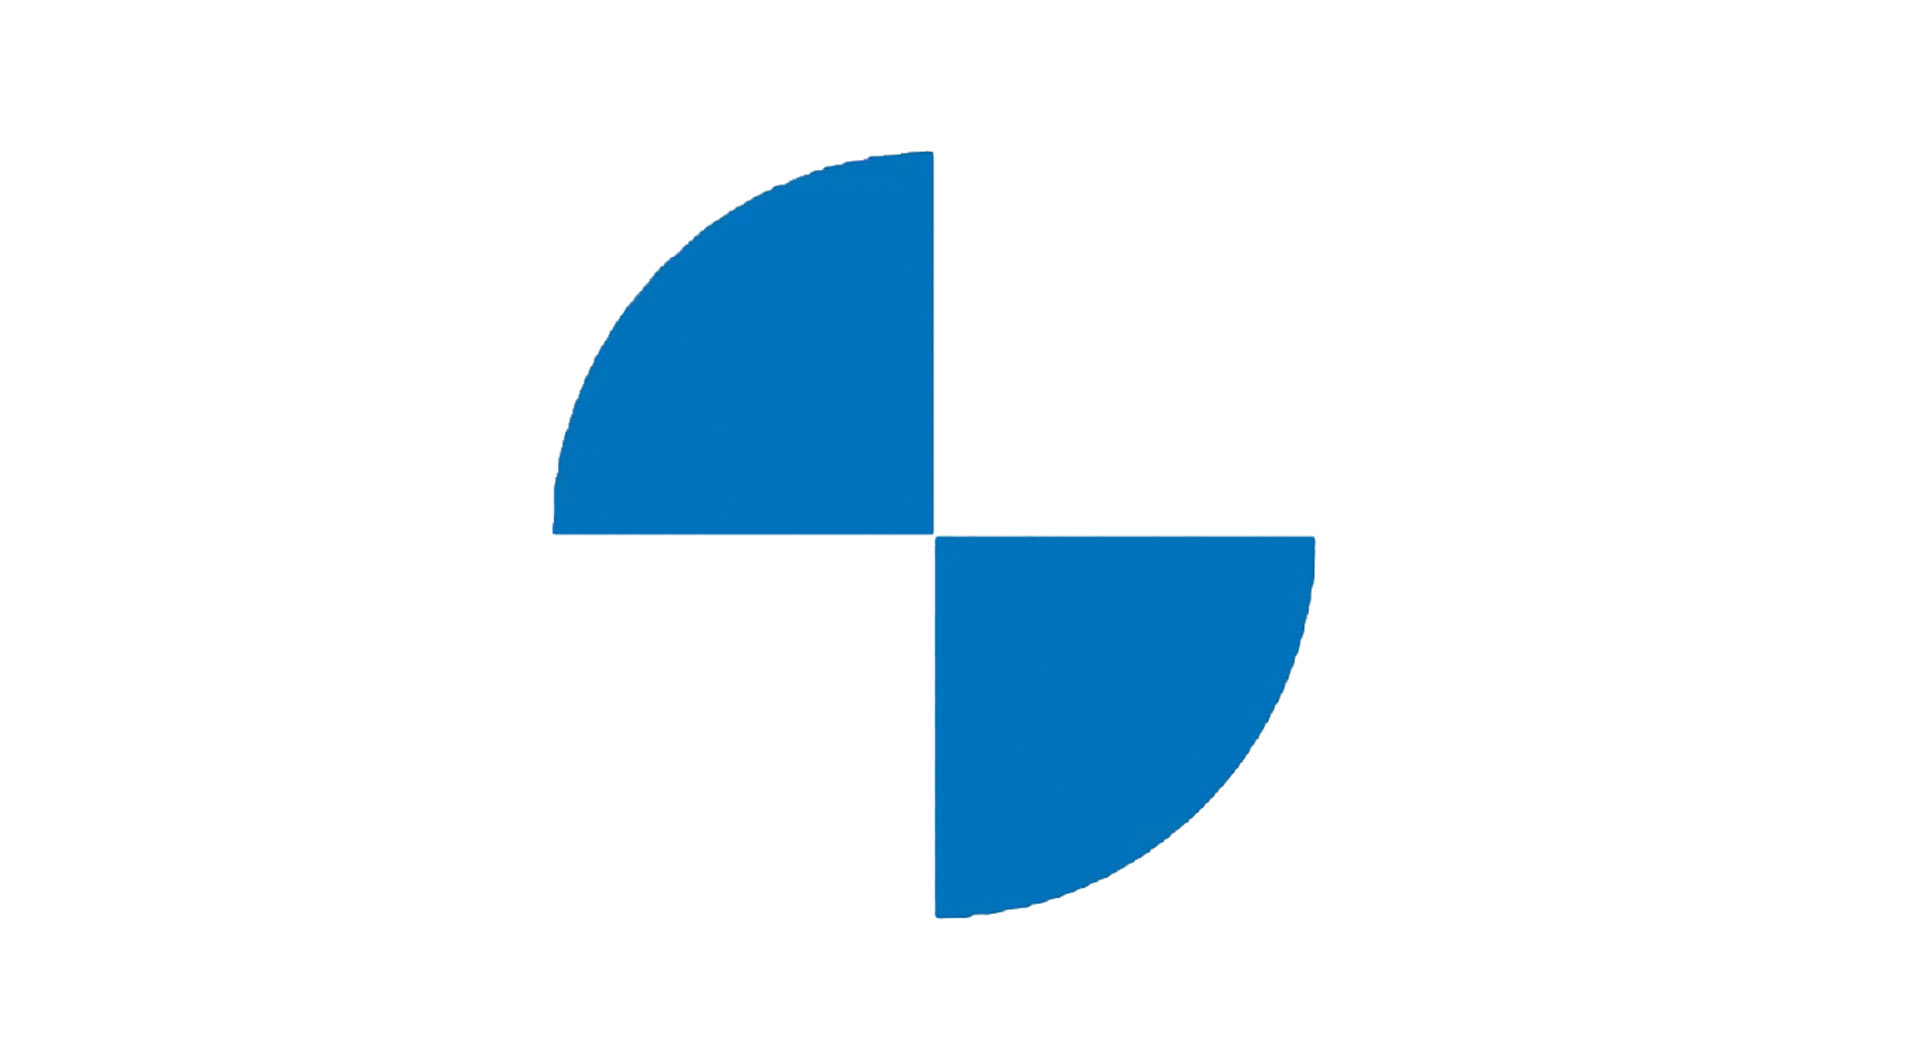 Bmw Officially Introduces New Flat Logo For Use On Promotional Material Not On Cars Yet Carscoops